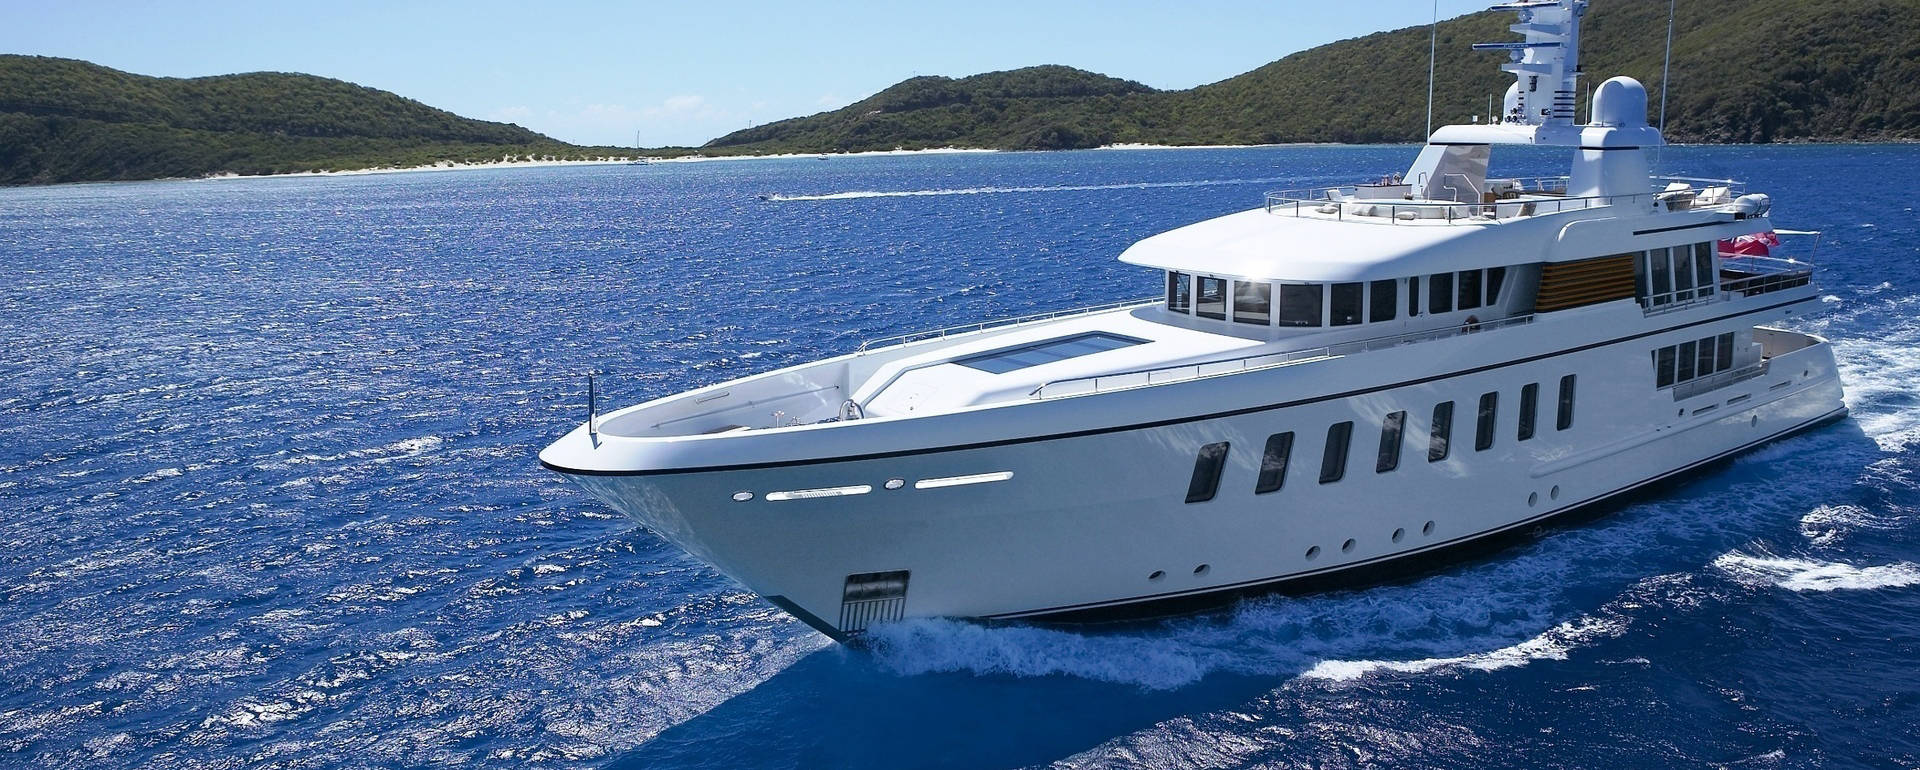 Luxury Yacht Rent In Croatia